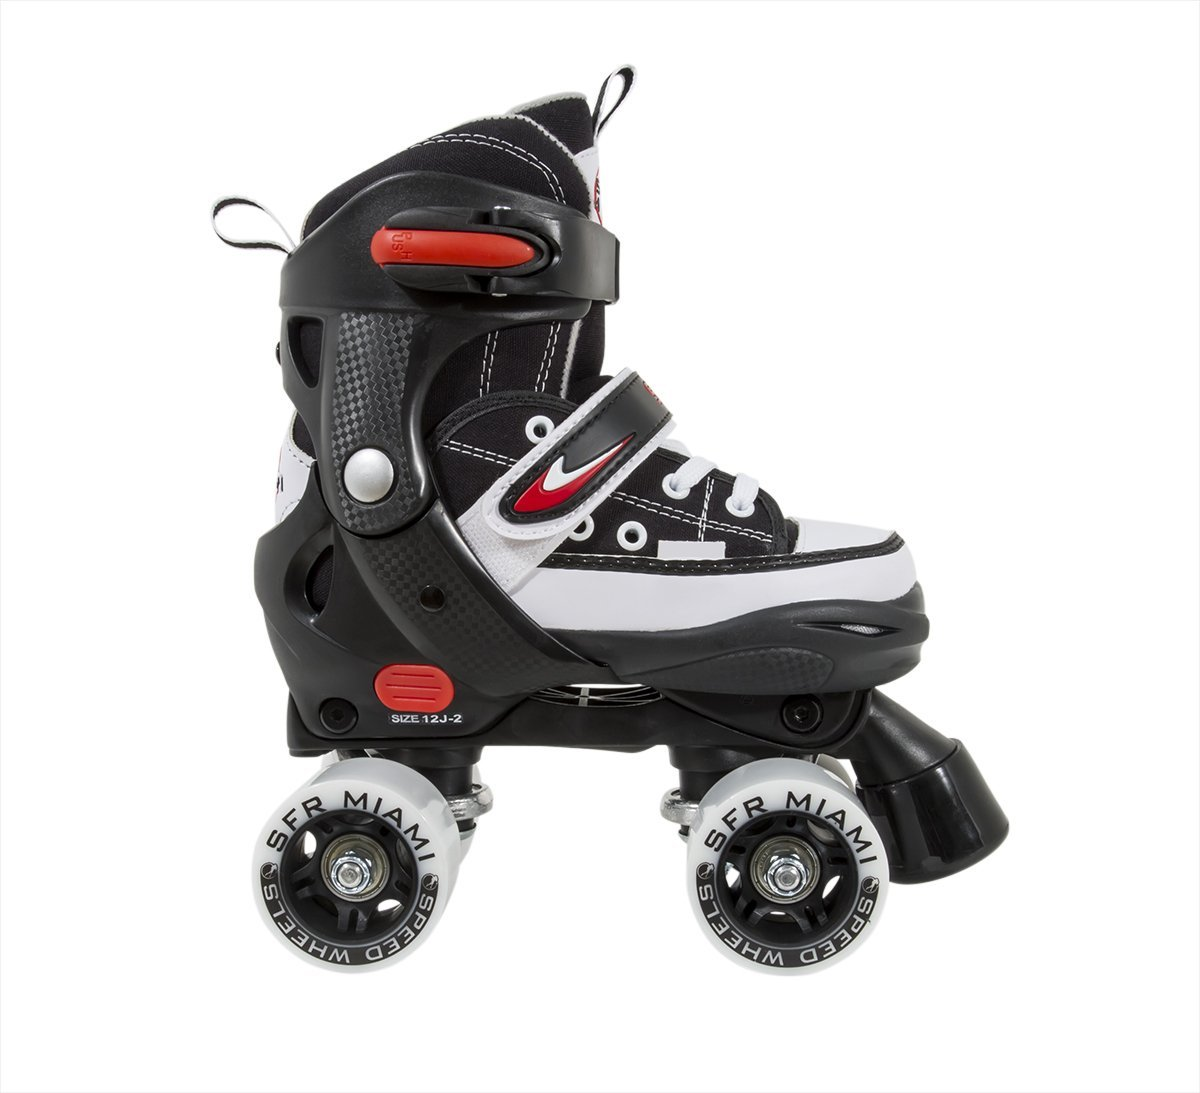 SFR Miami Kids Quads Black/Red